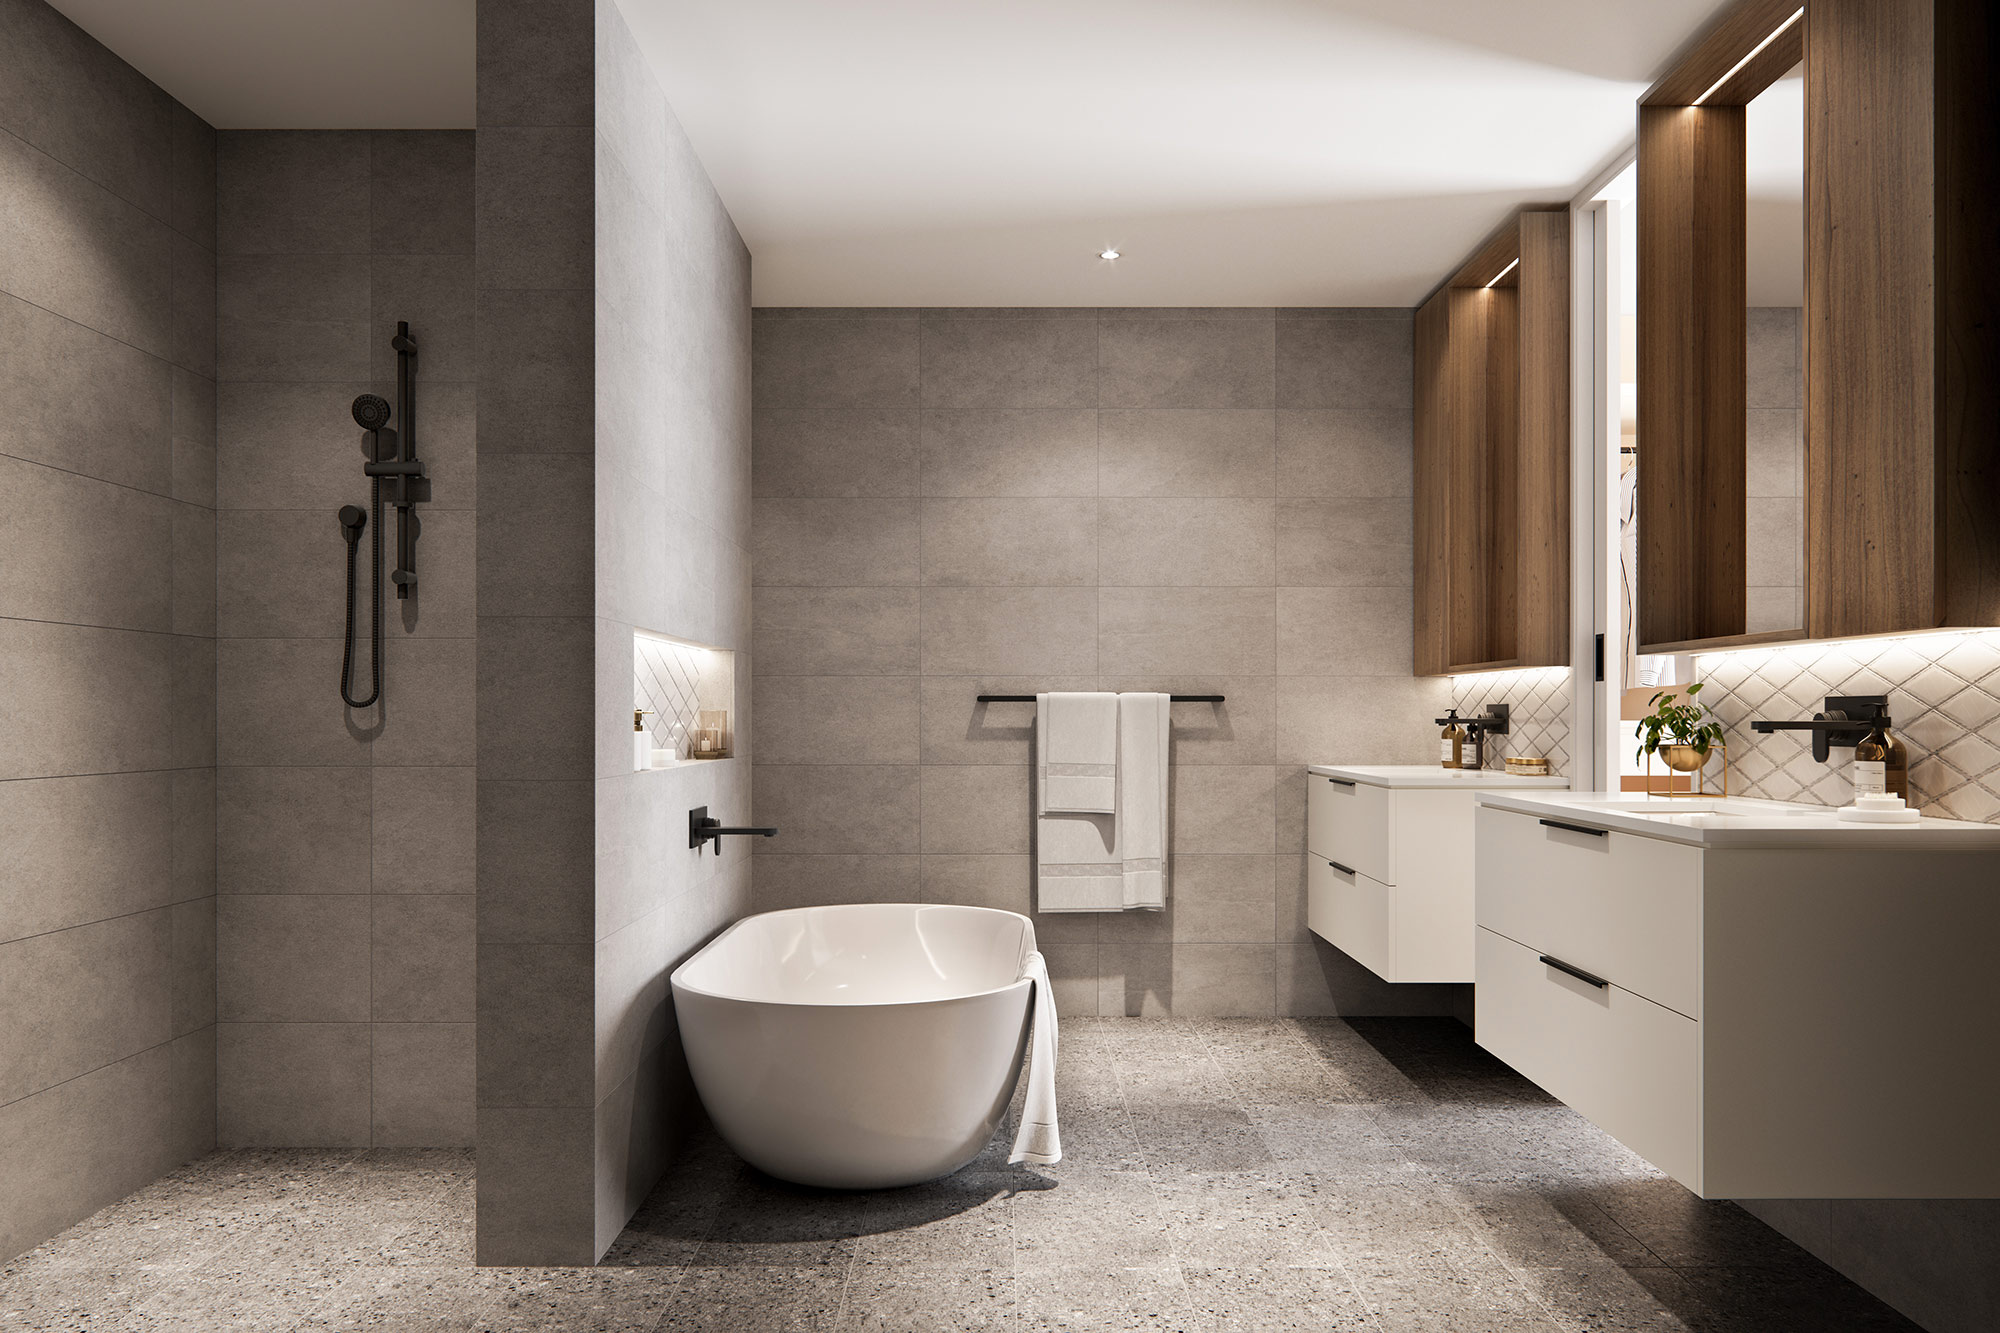 bathroom-render-2.jpg